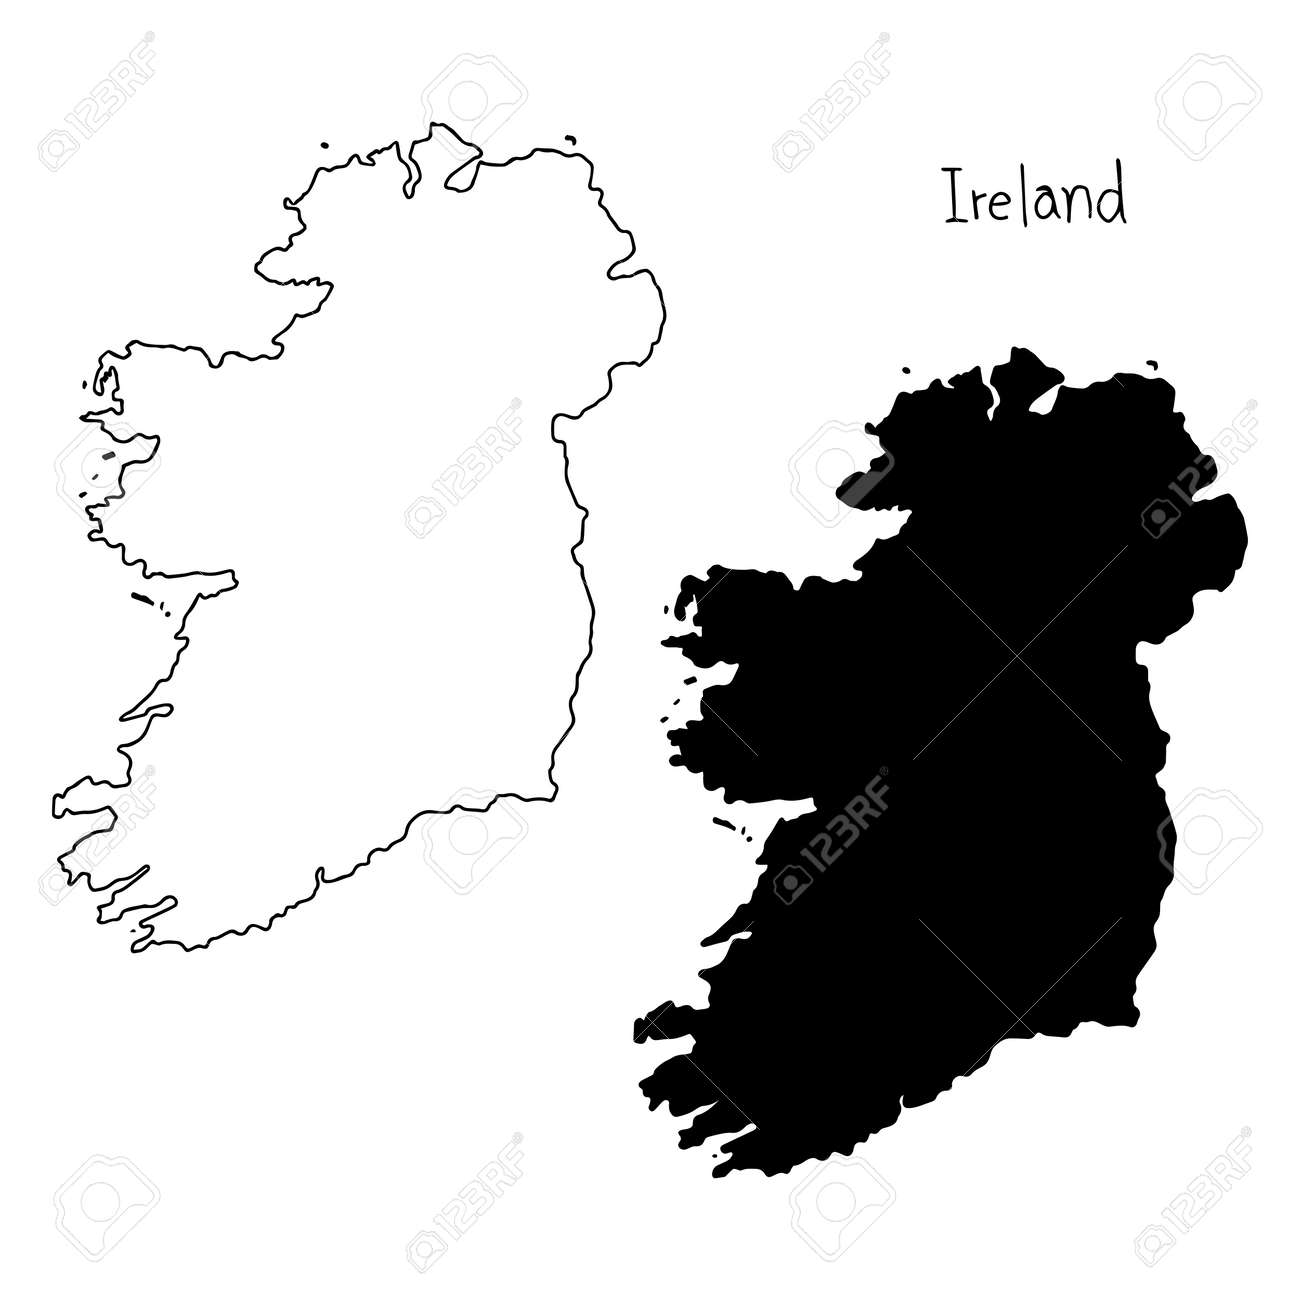 Map Of Ireland Vector.Outline And Silhouette Map Of Ireland Vector Illustration Hand